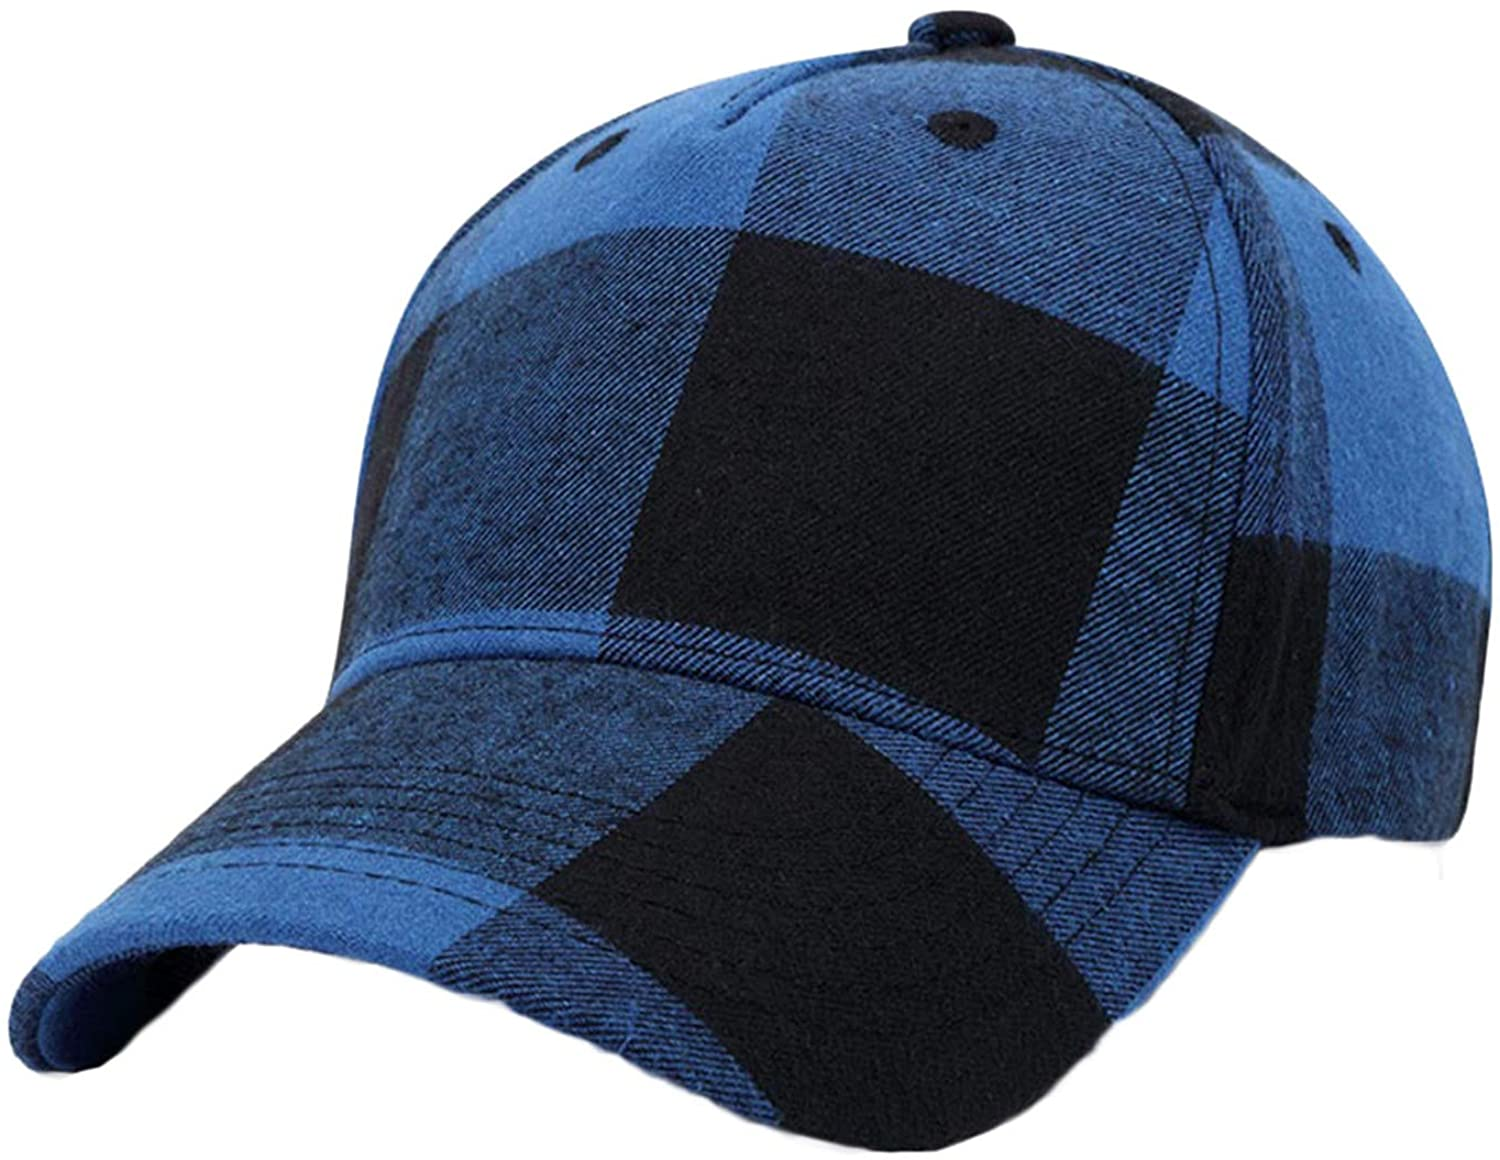 Soluo Casual Plaid Cap Classic Adjustable Soft Baseball Dad Ha Unisex Hats for Men & Women